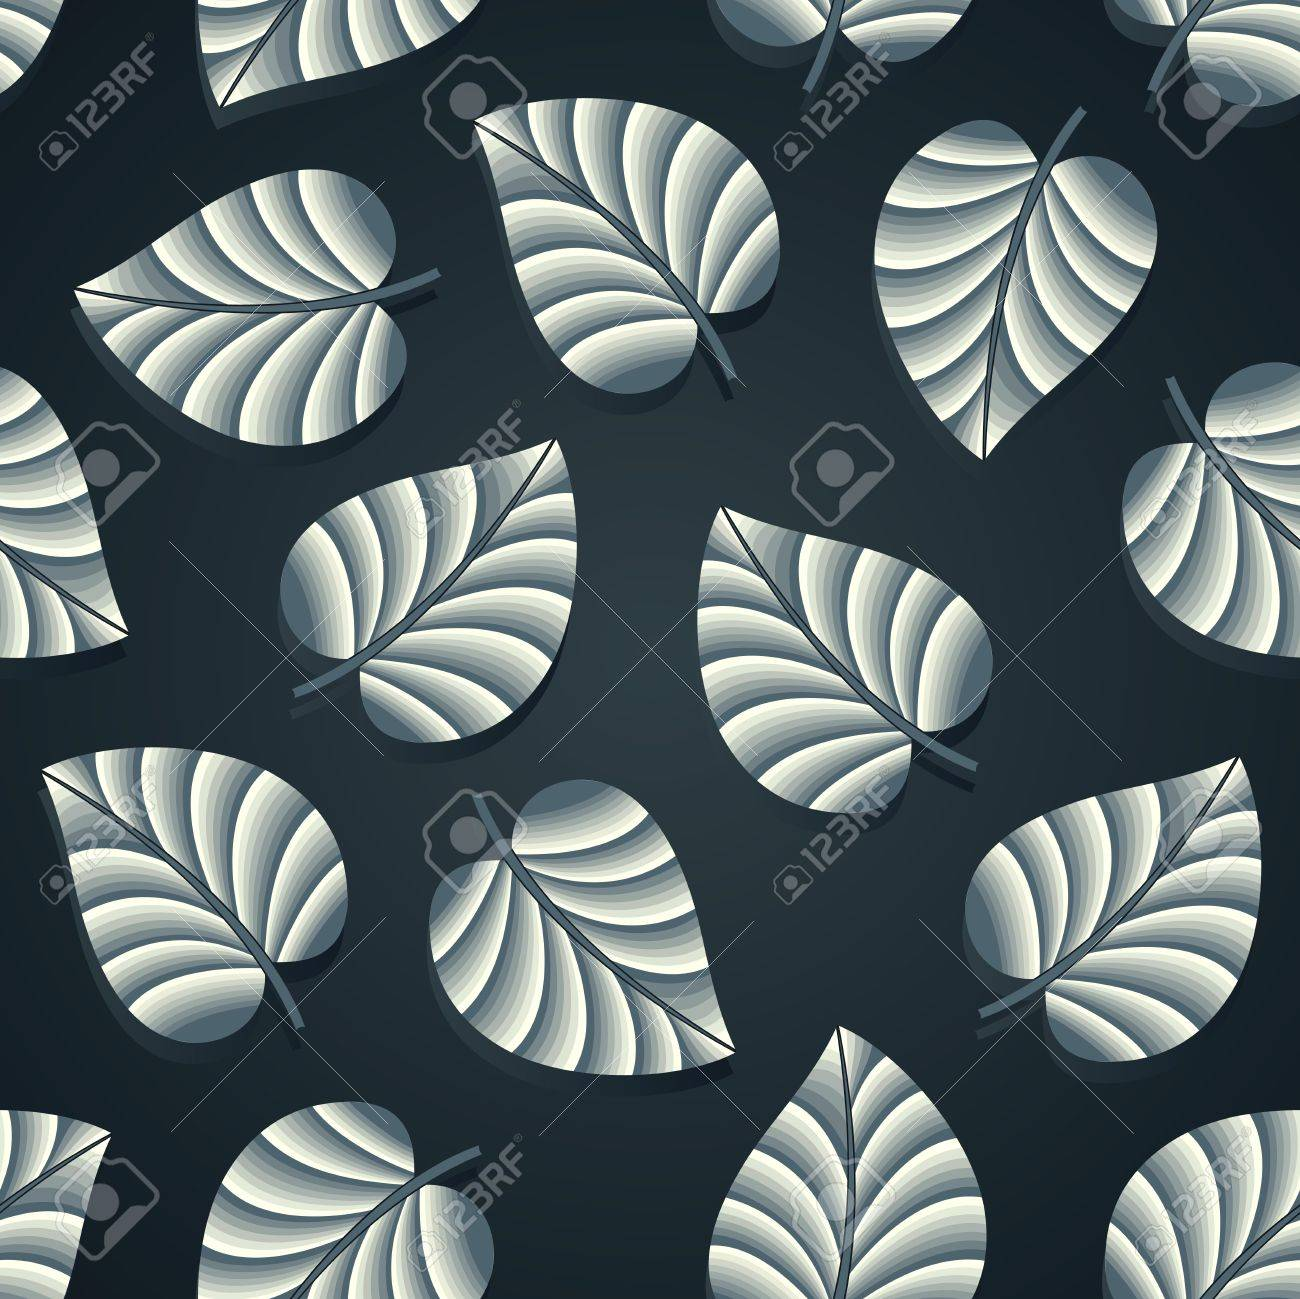 Bed sheet design texture - Royal Seamless Leaves Wallpaper Stock Vector 18553192